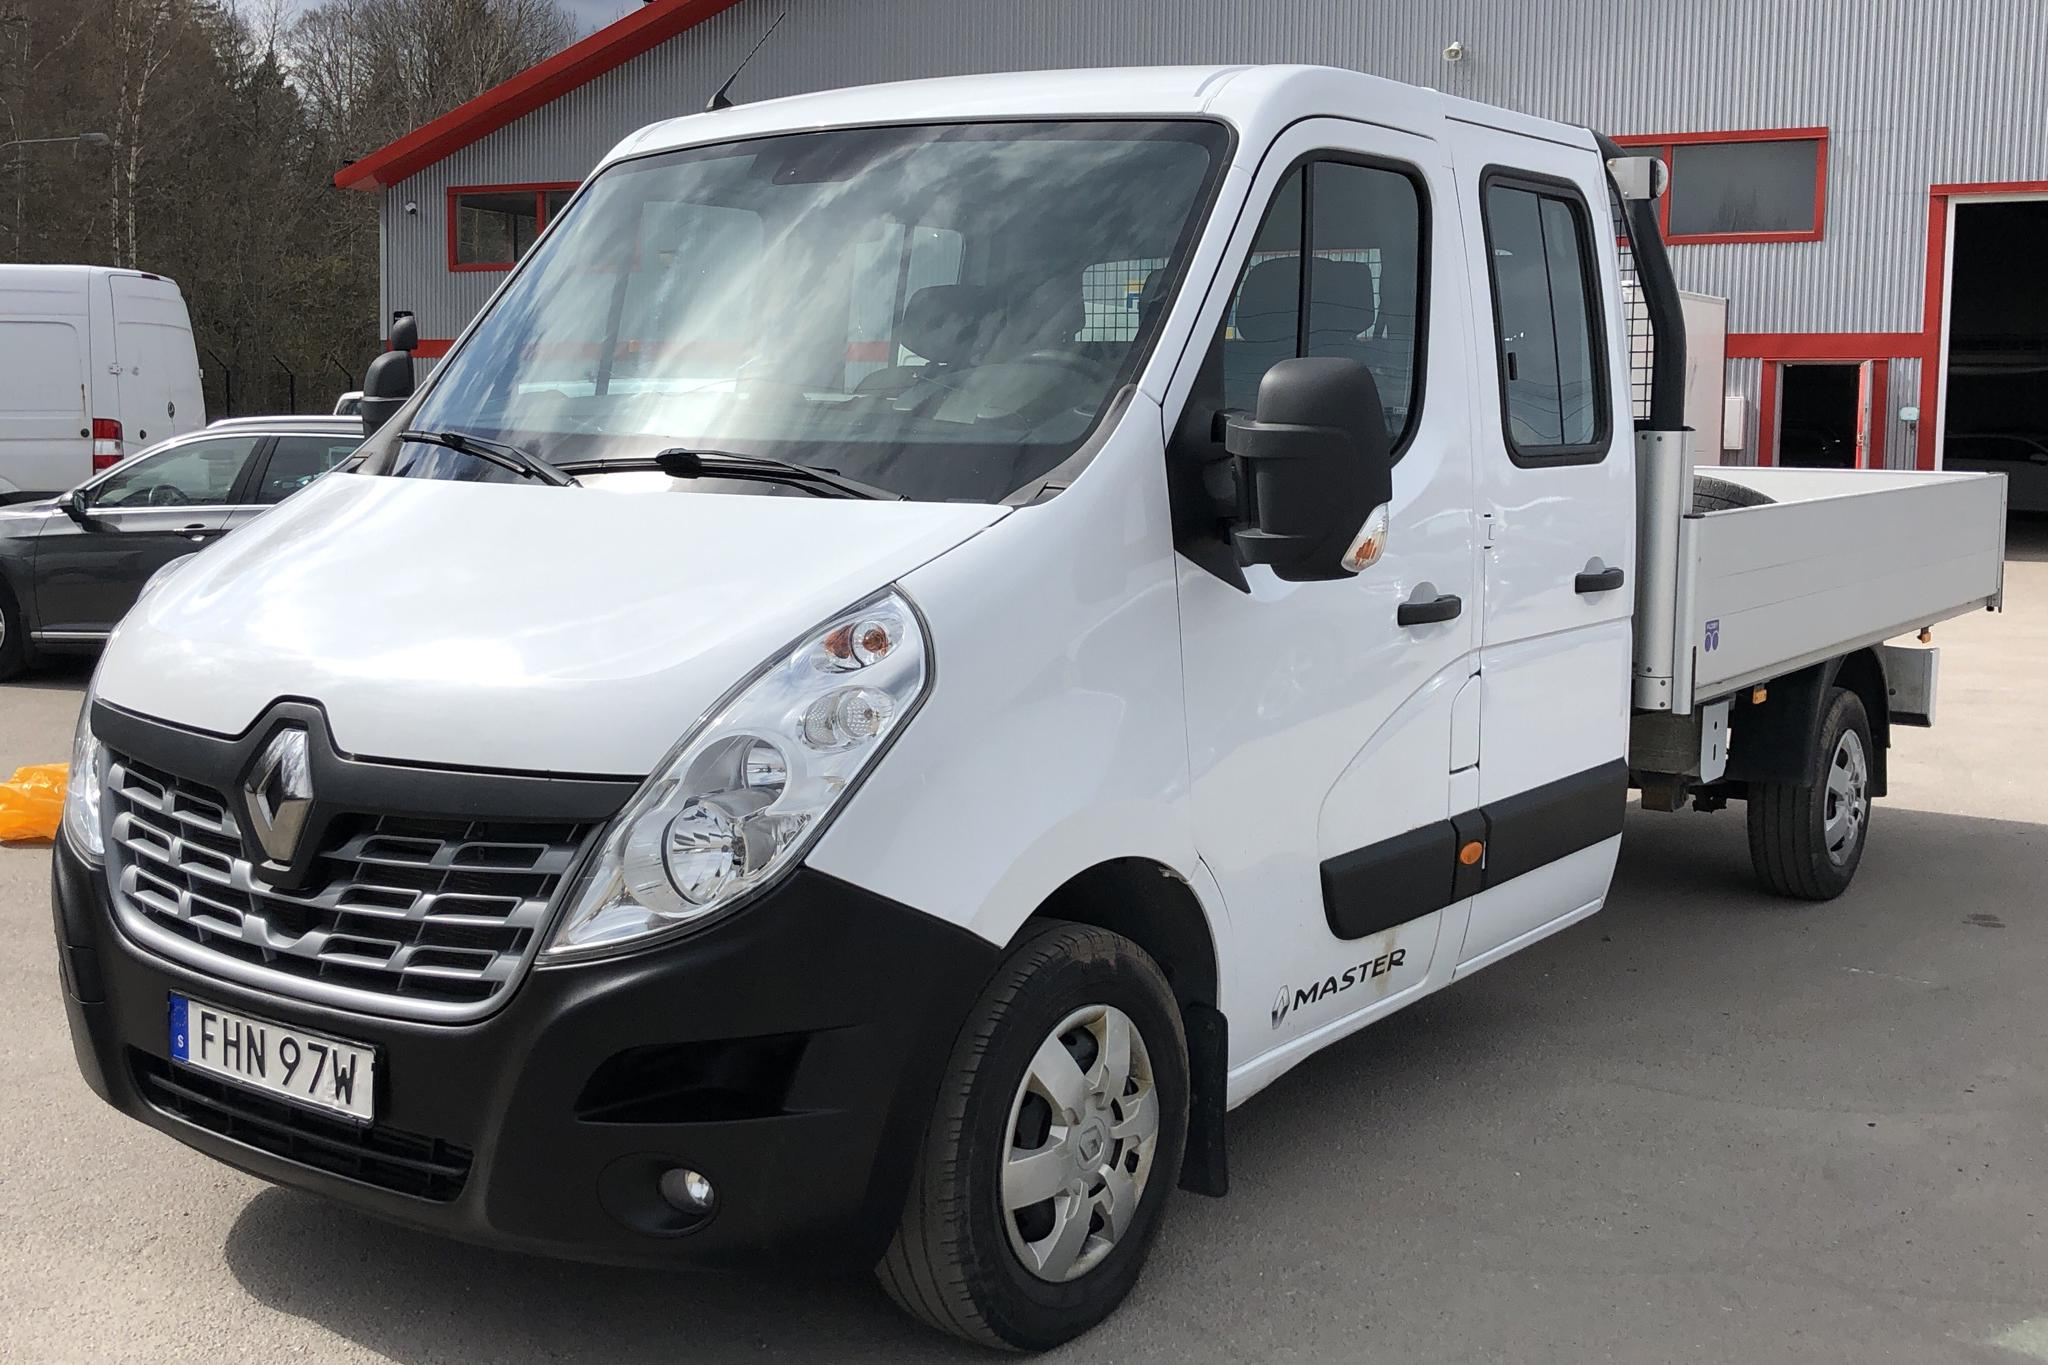 Renault Master 2.3 dCi Pickup/Chassi 2WD (145hk) - 58 700 km - Manual - white - 2019